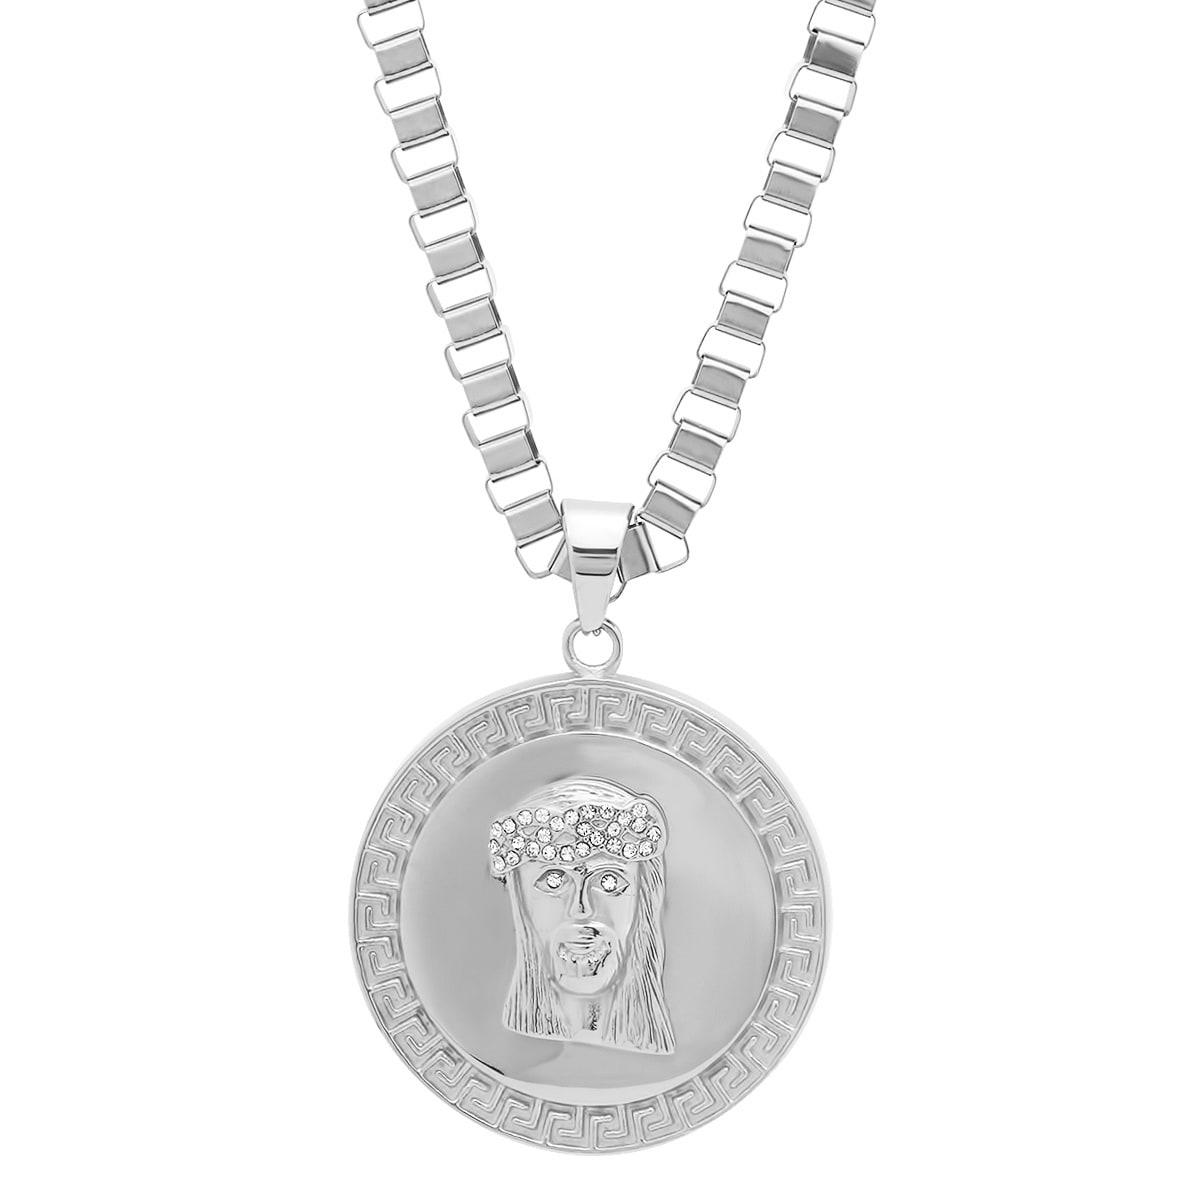 Shop steeltime mens stainless steel cubic zirconia jesus head shop steeltime mens stainless steel cubic zirconia jesus head pendant with greek key in 2 colors free shipping on orders over 45 overstock aloadofball Gallery